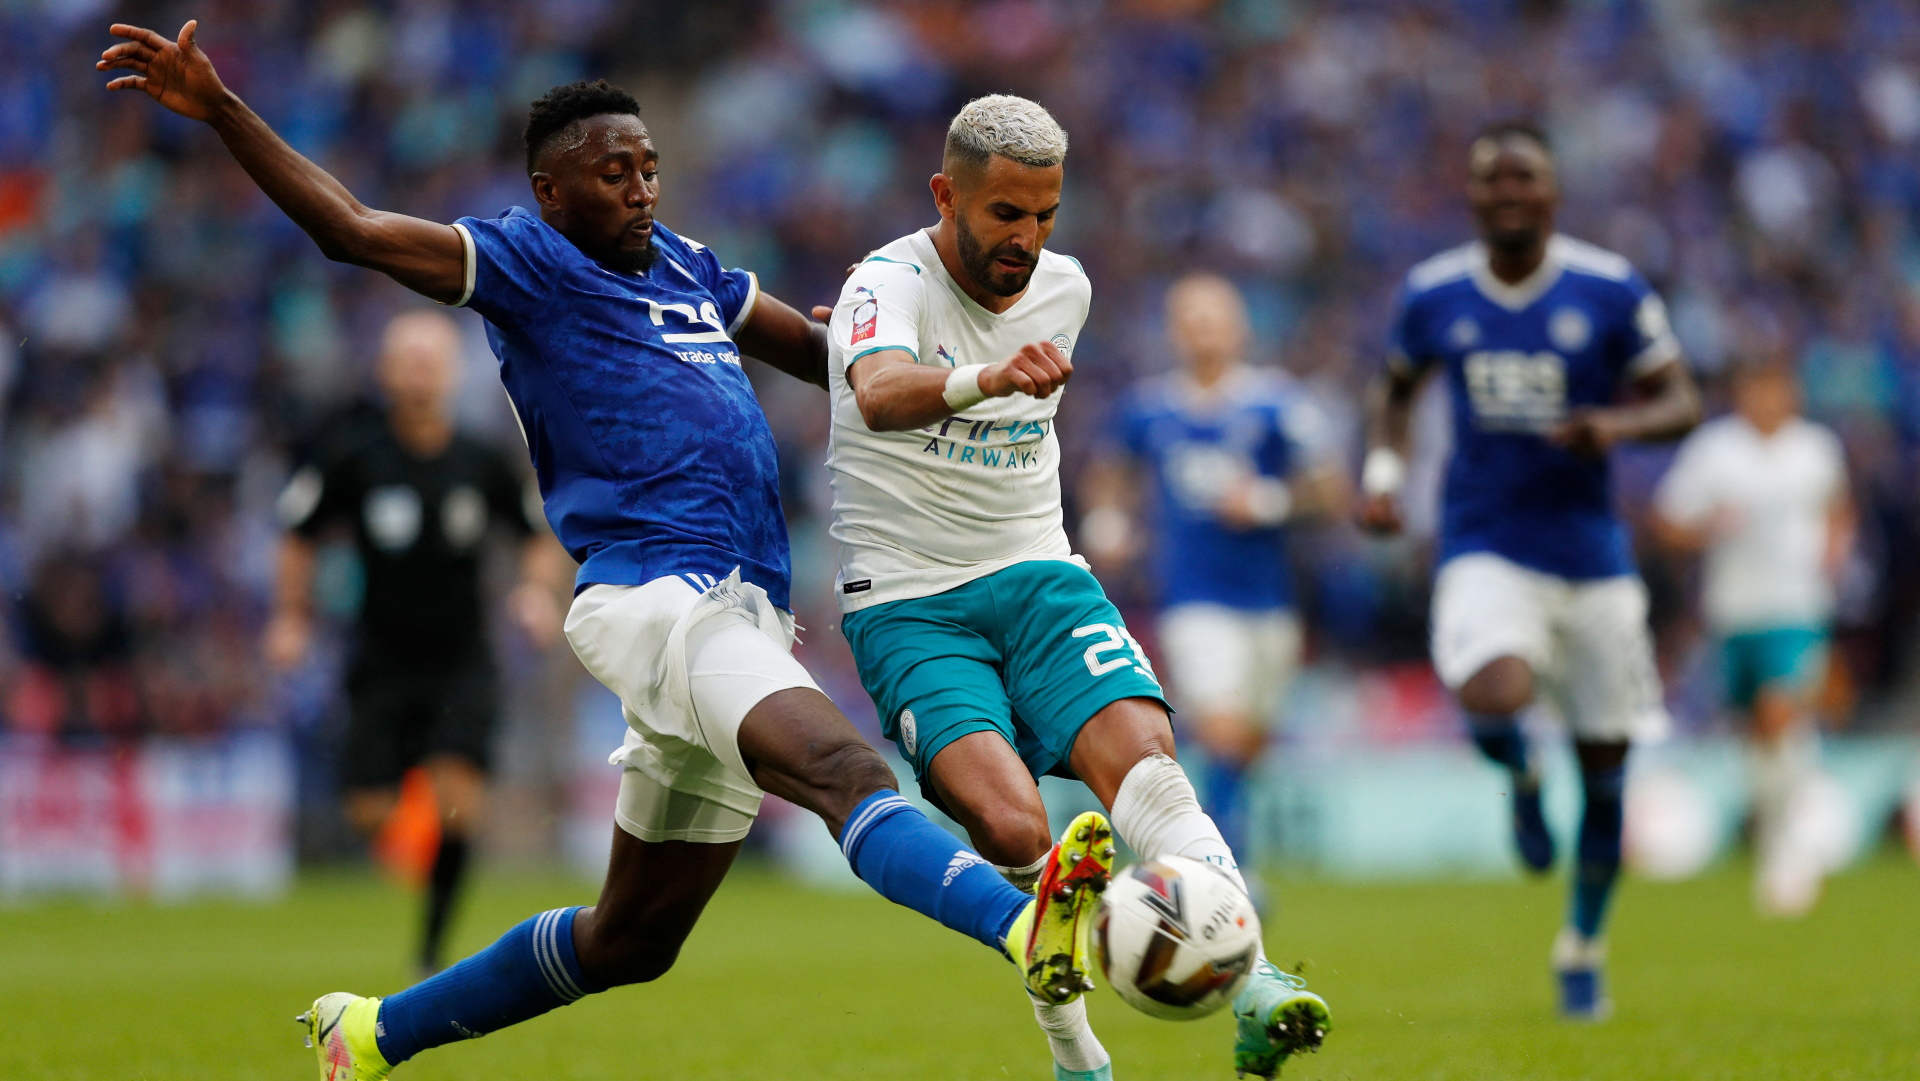 Leicester City's Ndidi makes West Ham prediction